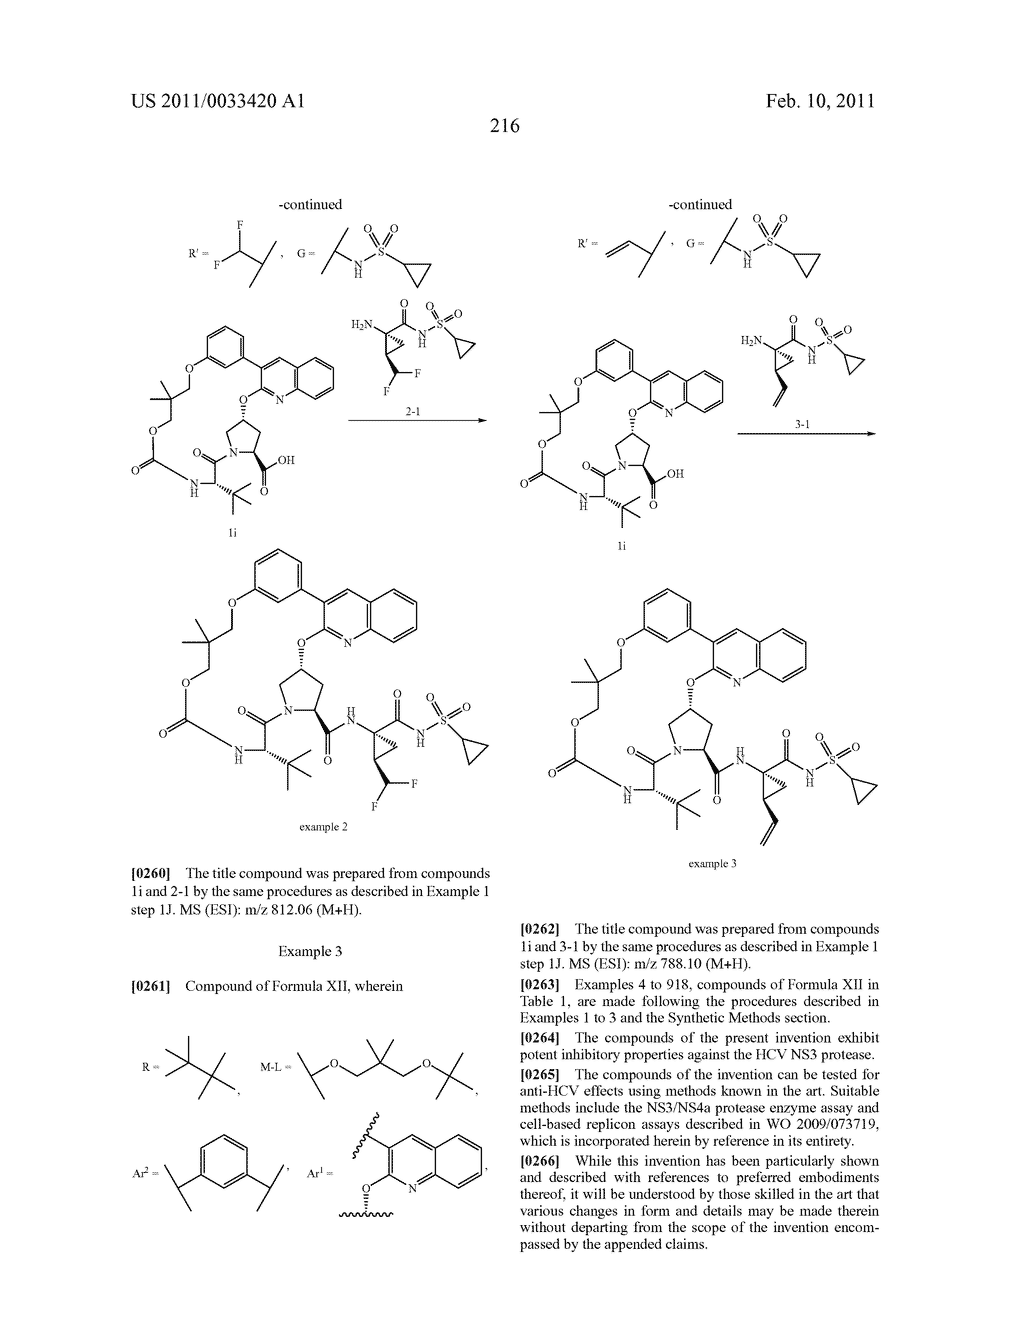 MACROCYCLIC COMPOUNDS AS HEPATITIS C VIRUS INHIBITORS - diagram, schematic, and image 217